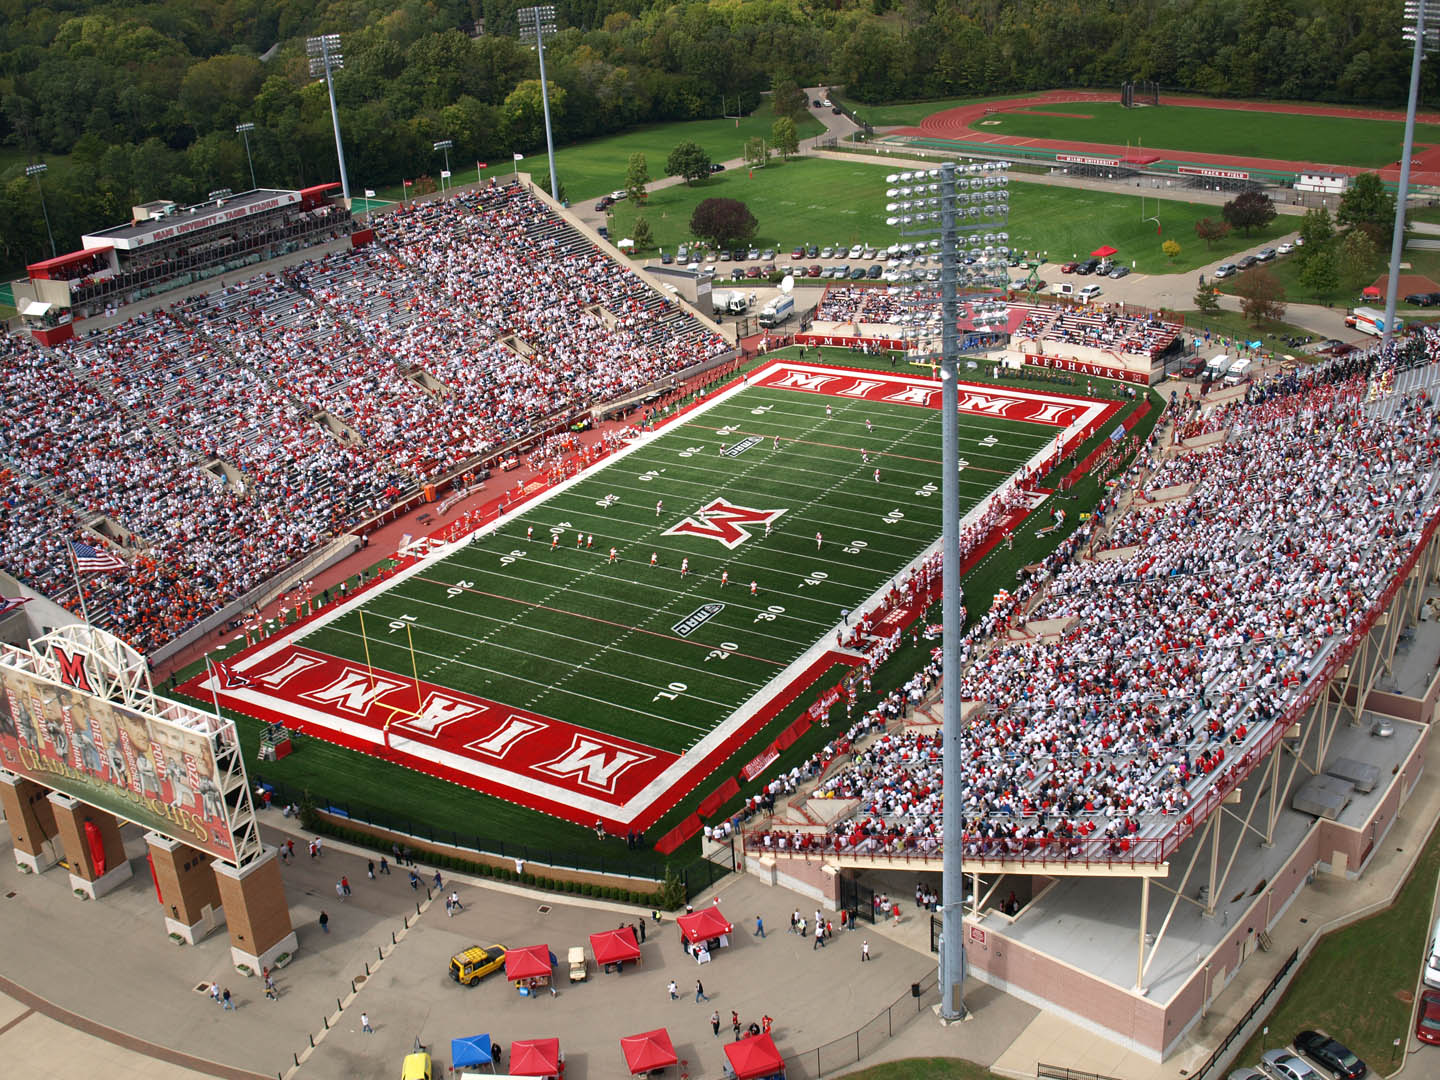 Fred Yager Stadium, home of the Miami-OH Redhawks